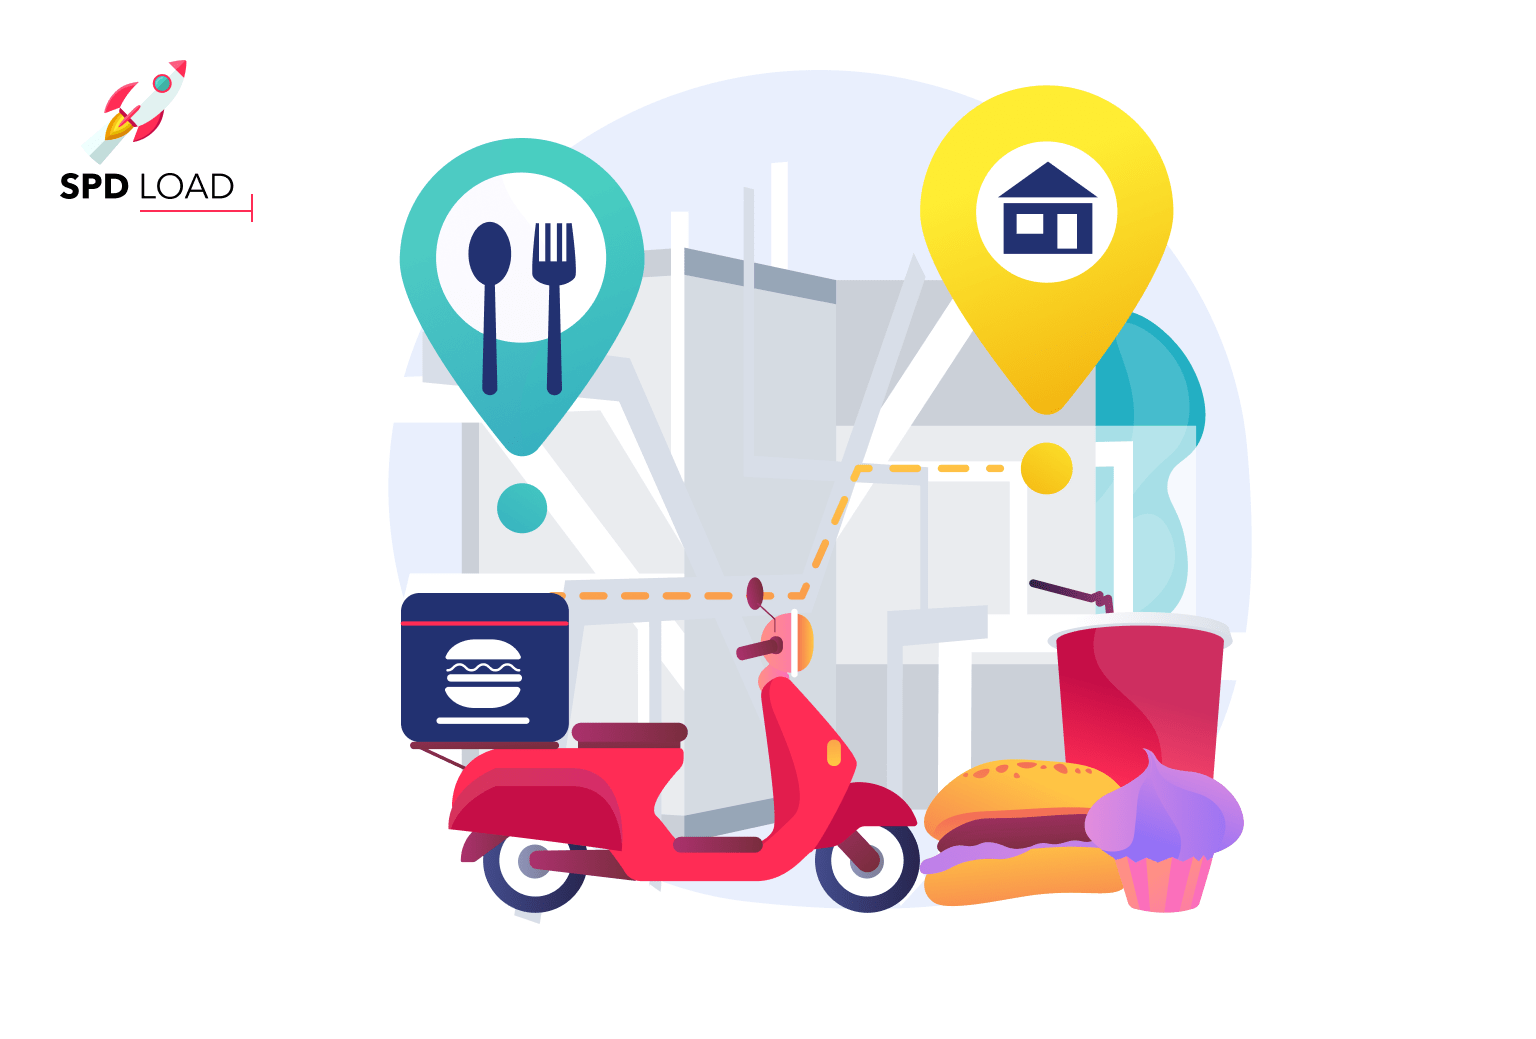 SpdLoad prepared an in-depth guide on how to start a food delivery business